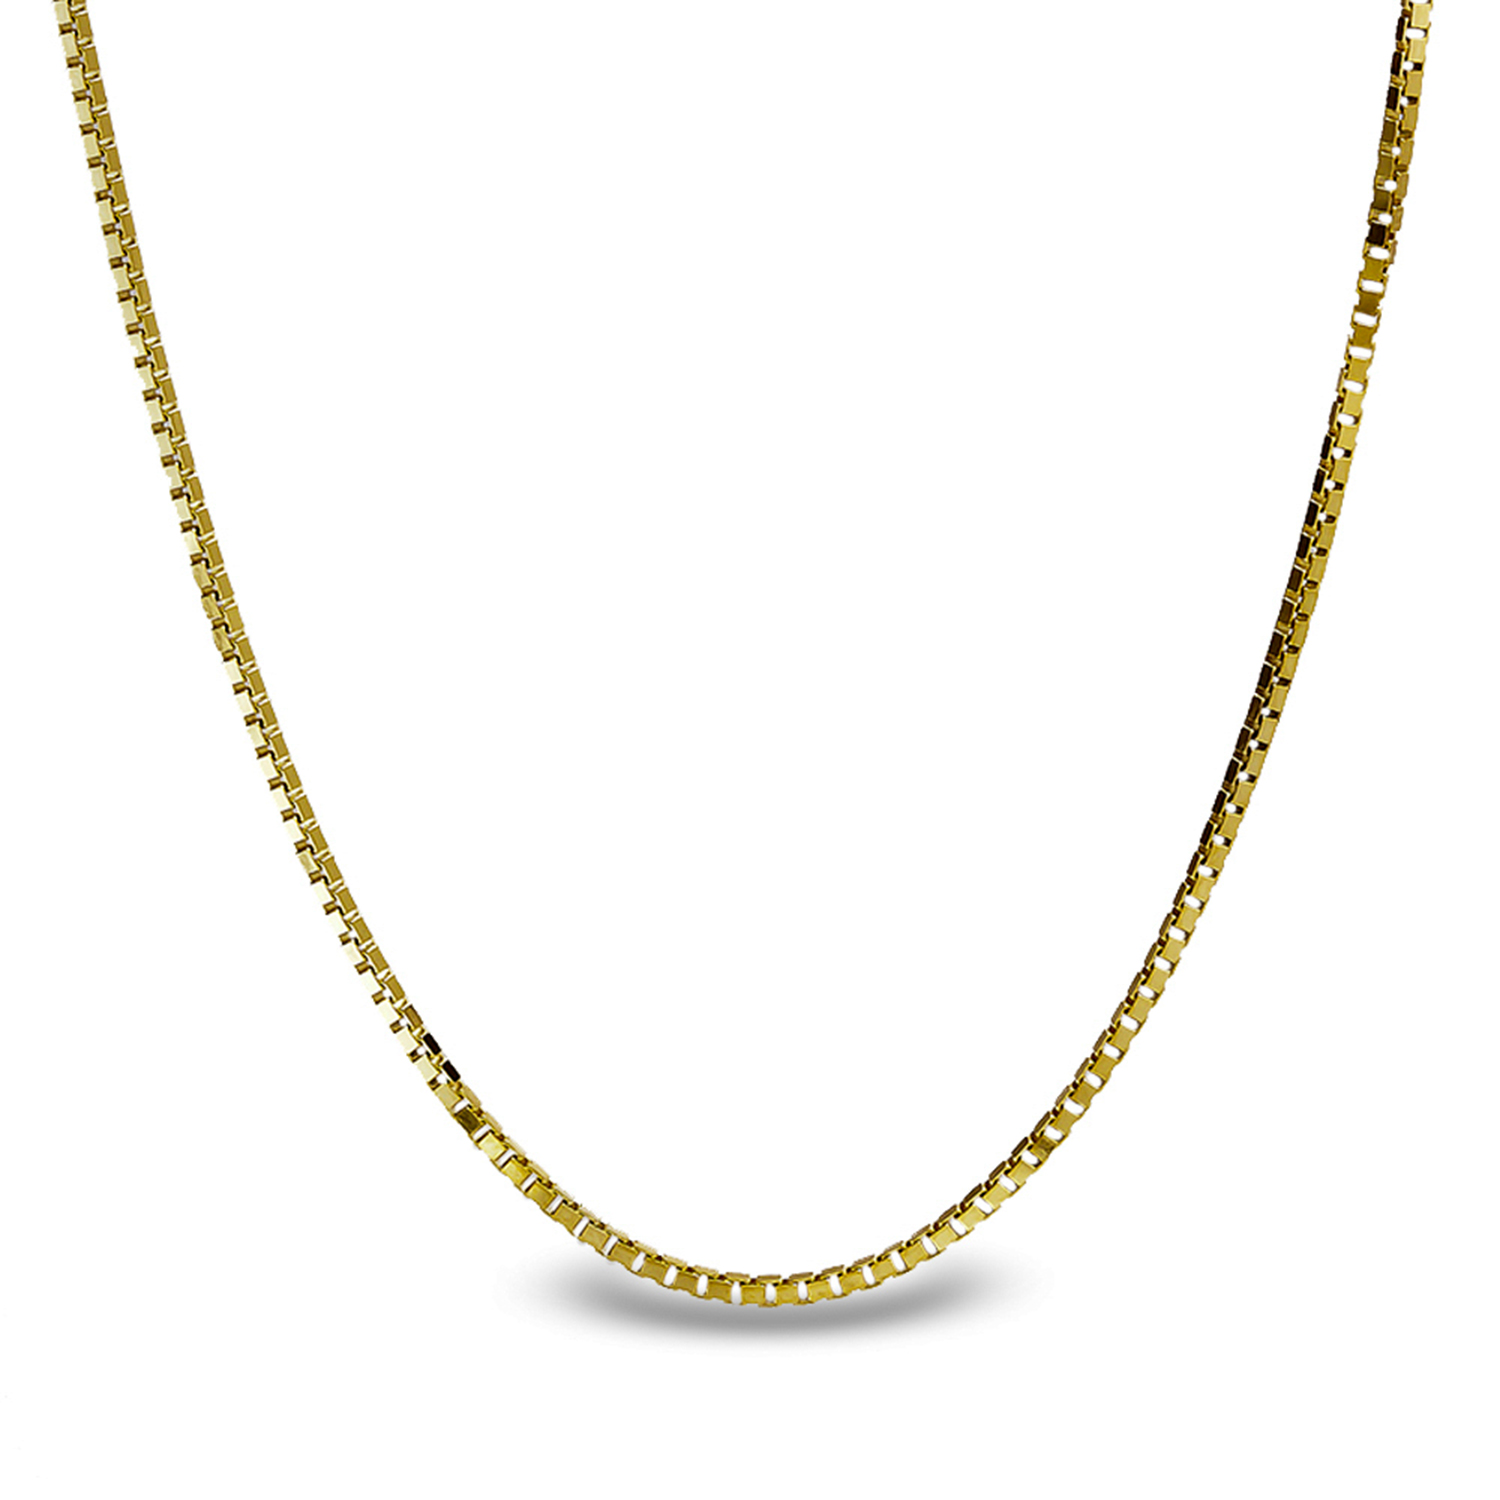 Box Chain 14k Gold Necklace - 18 in.